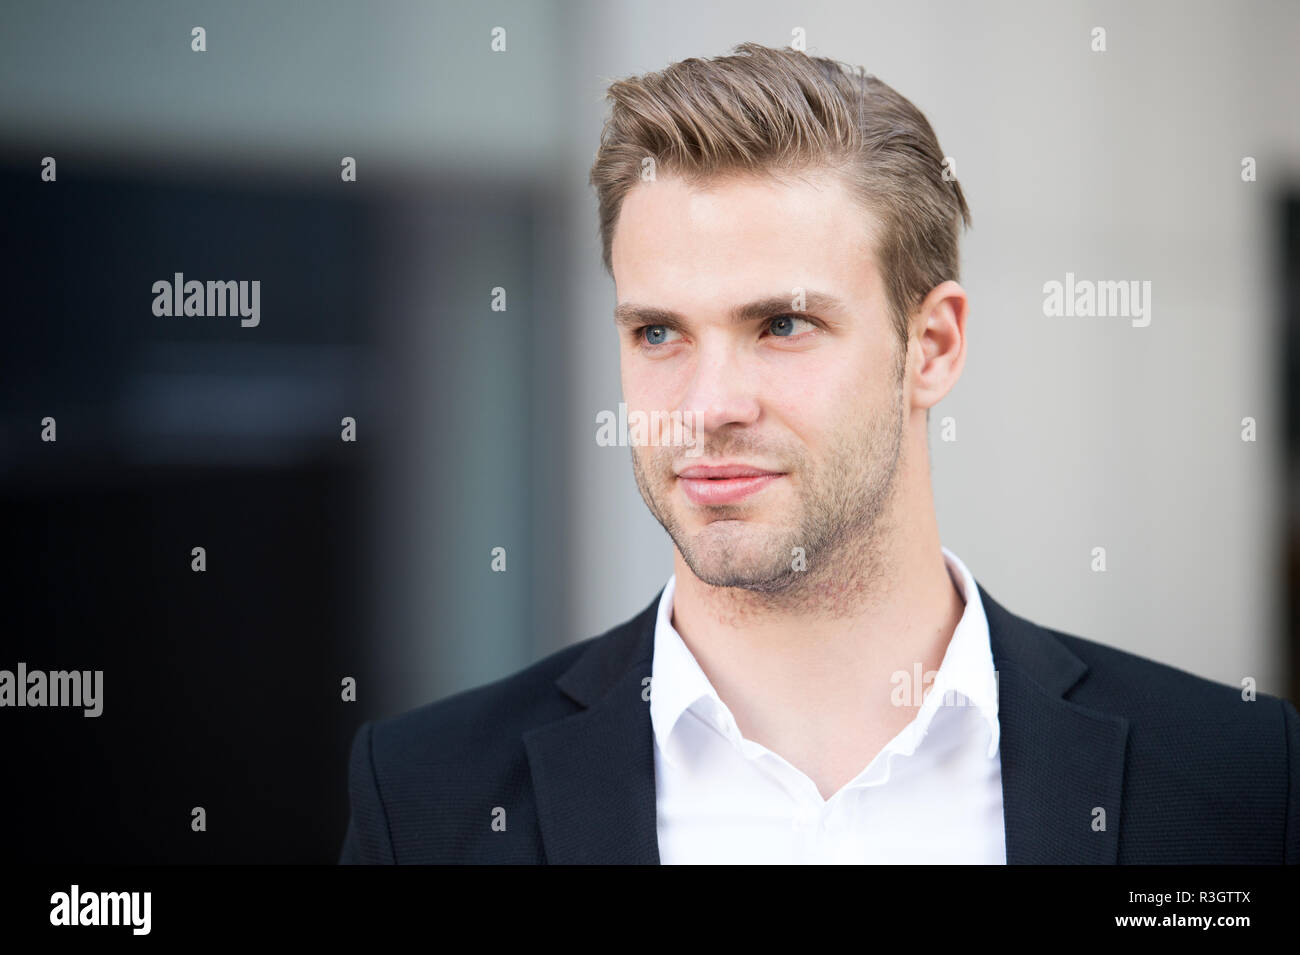 Man with trendy hairstyle. Used to look perfect. Confident buisnessman in formal wear. This is my city. Think about new possibilities. Barber services - Stock Image